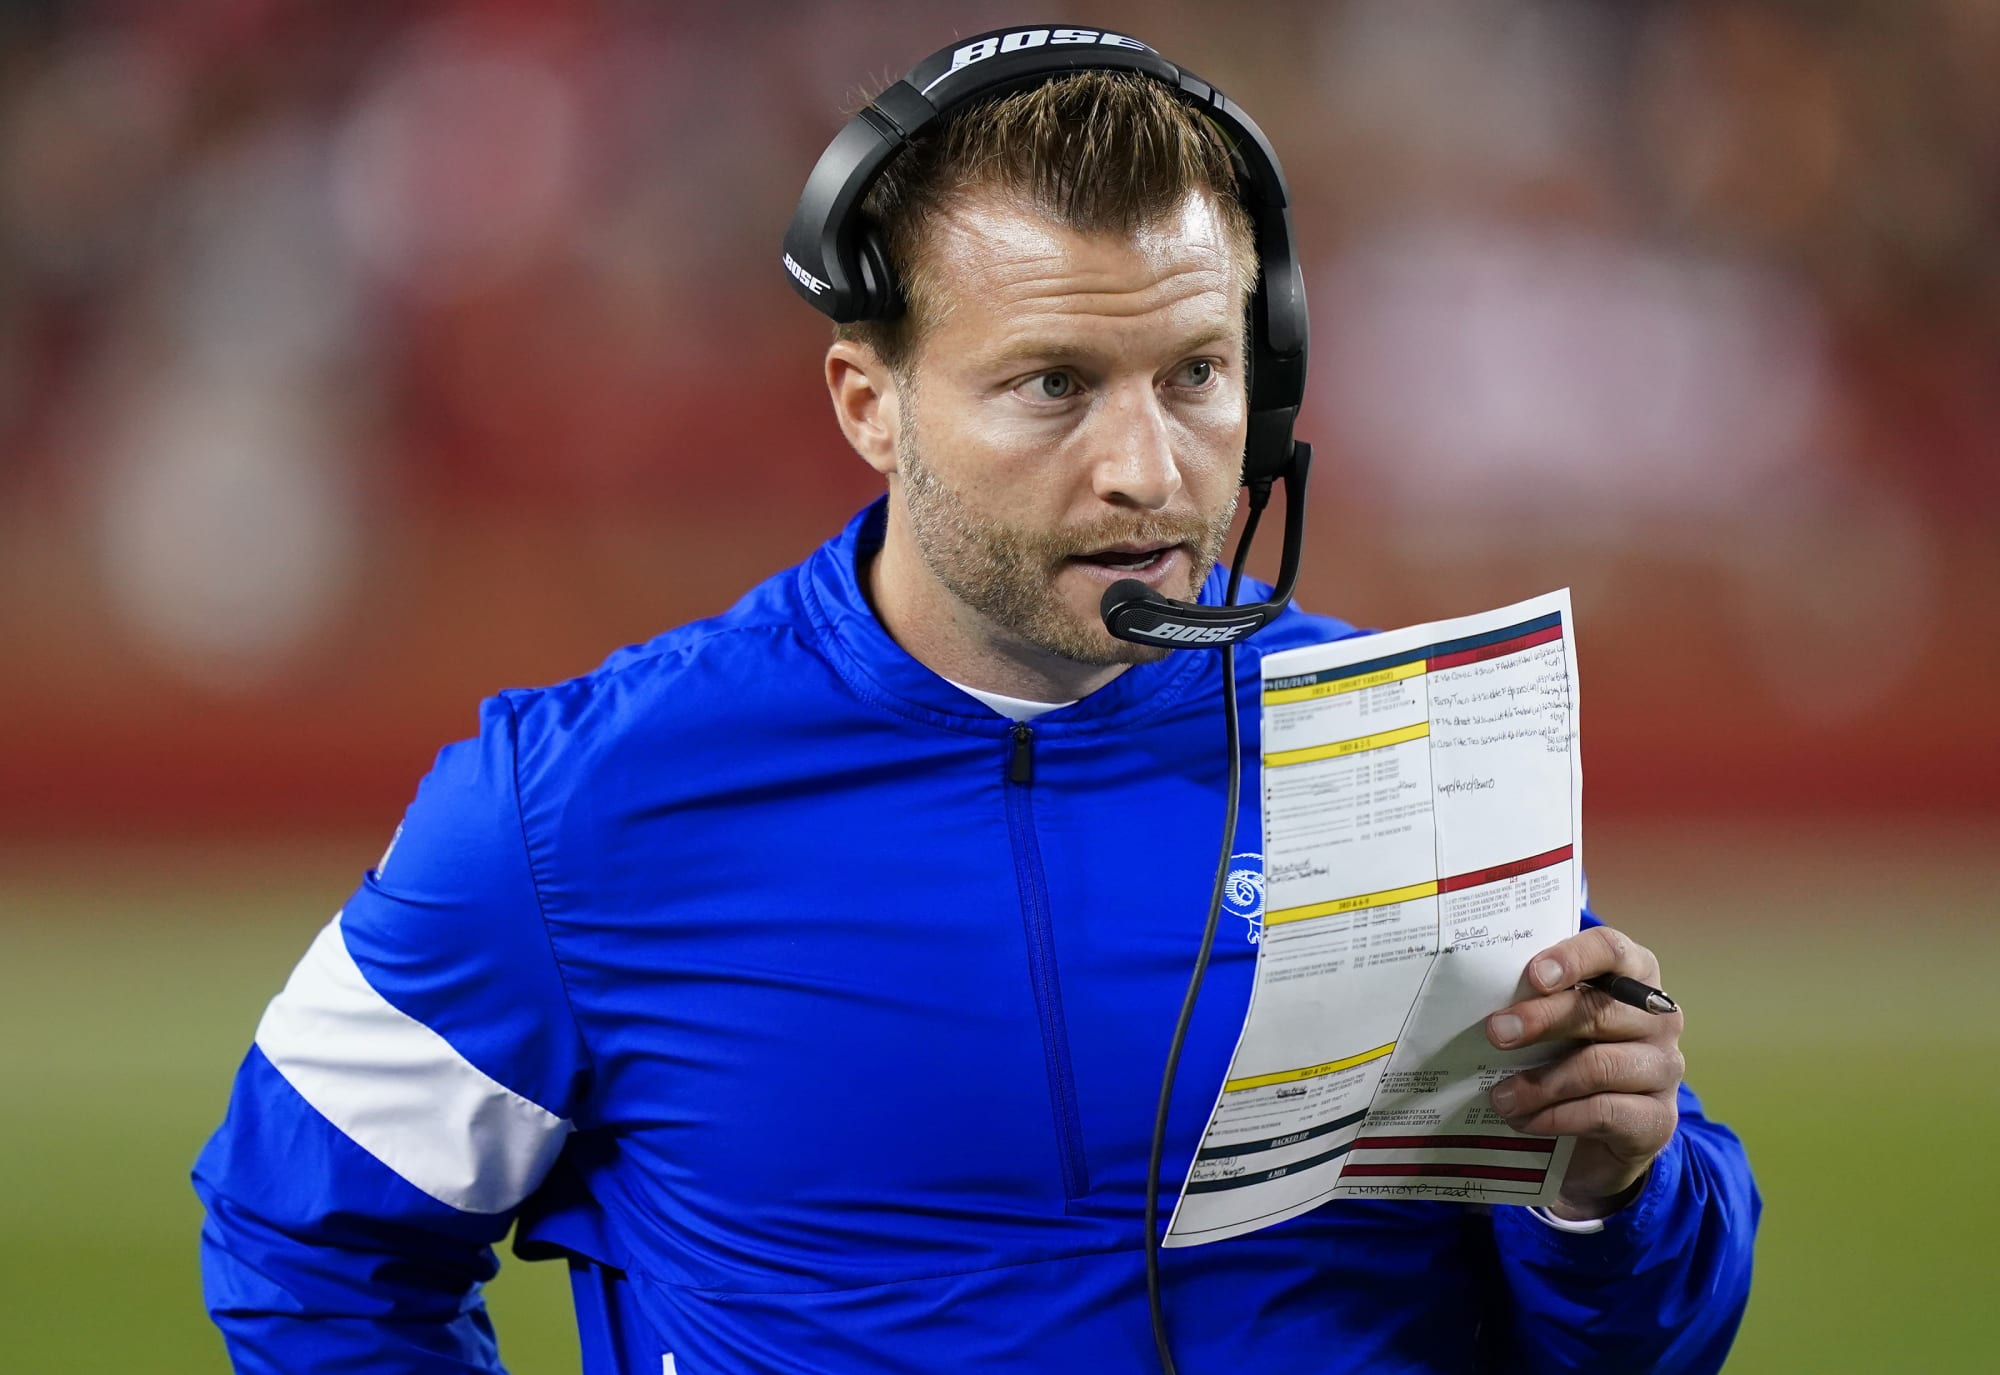 ESPN tried to pry Sean McVay from Rams for Monday Night Football gig